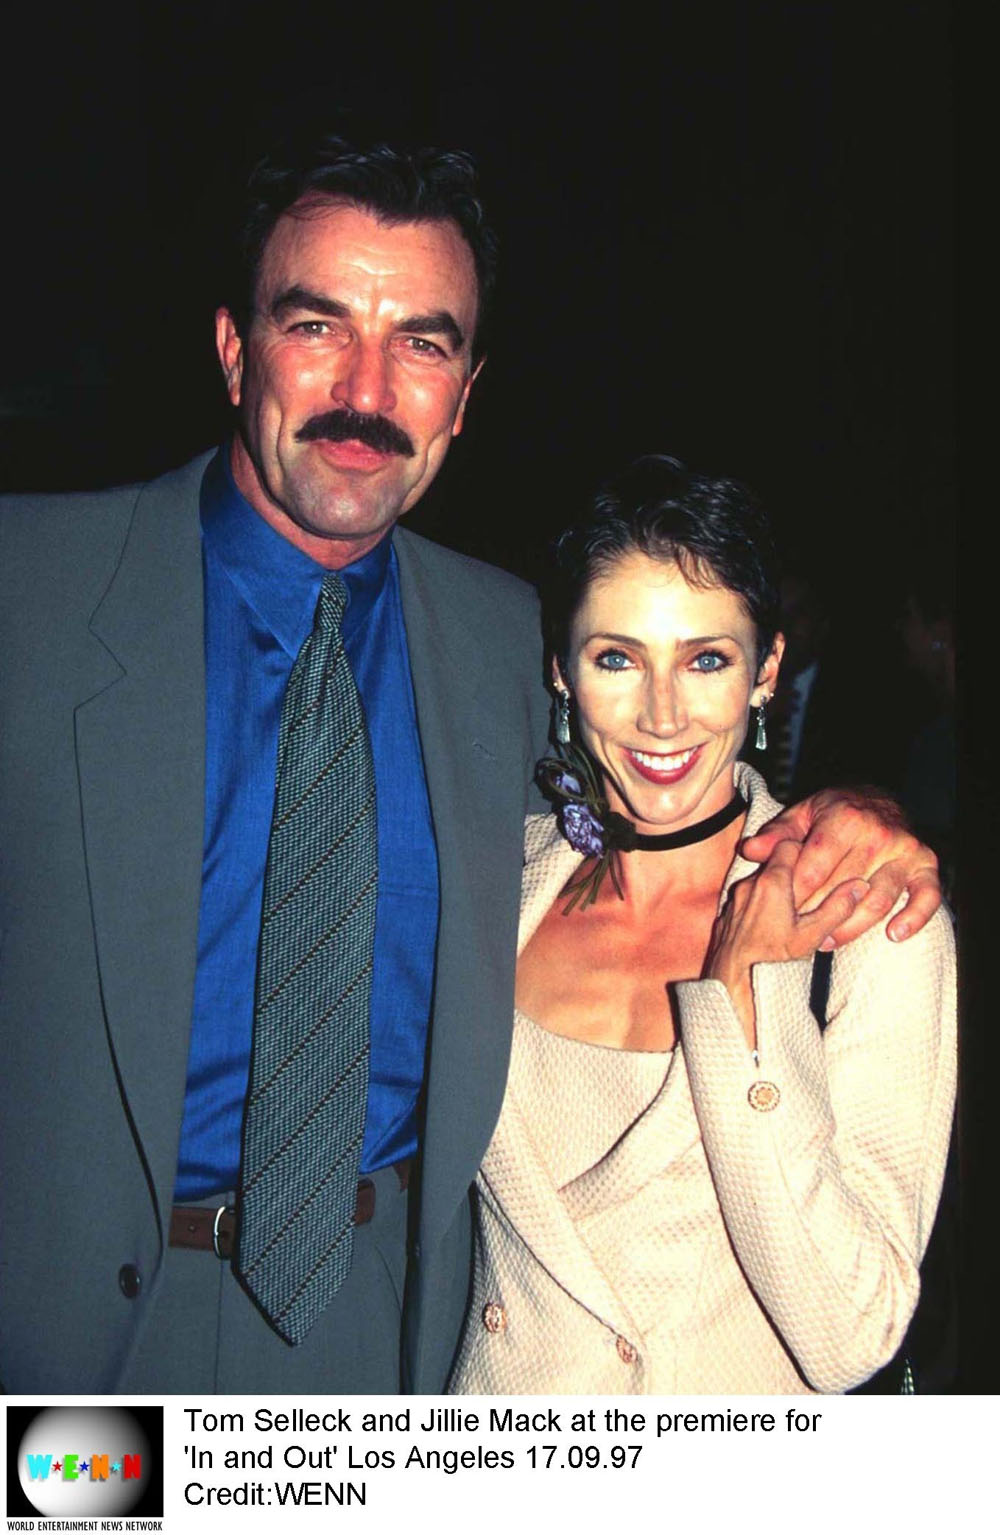 Tom selleck has been married tom selleck first wife